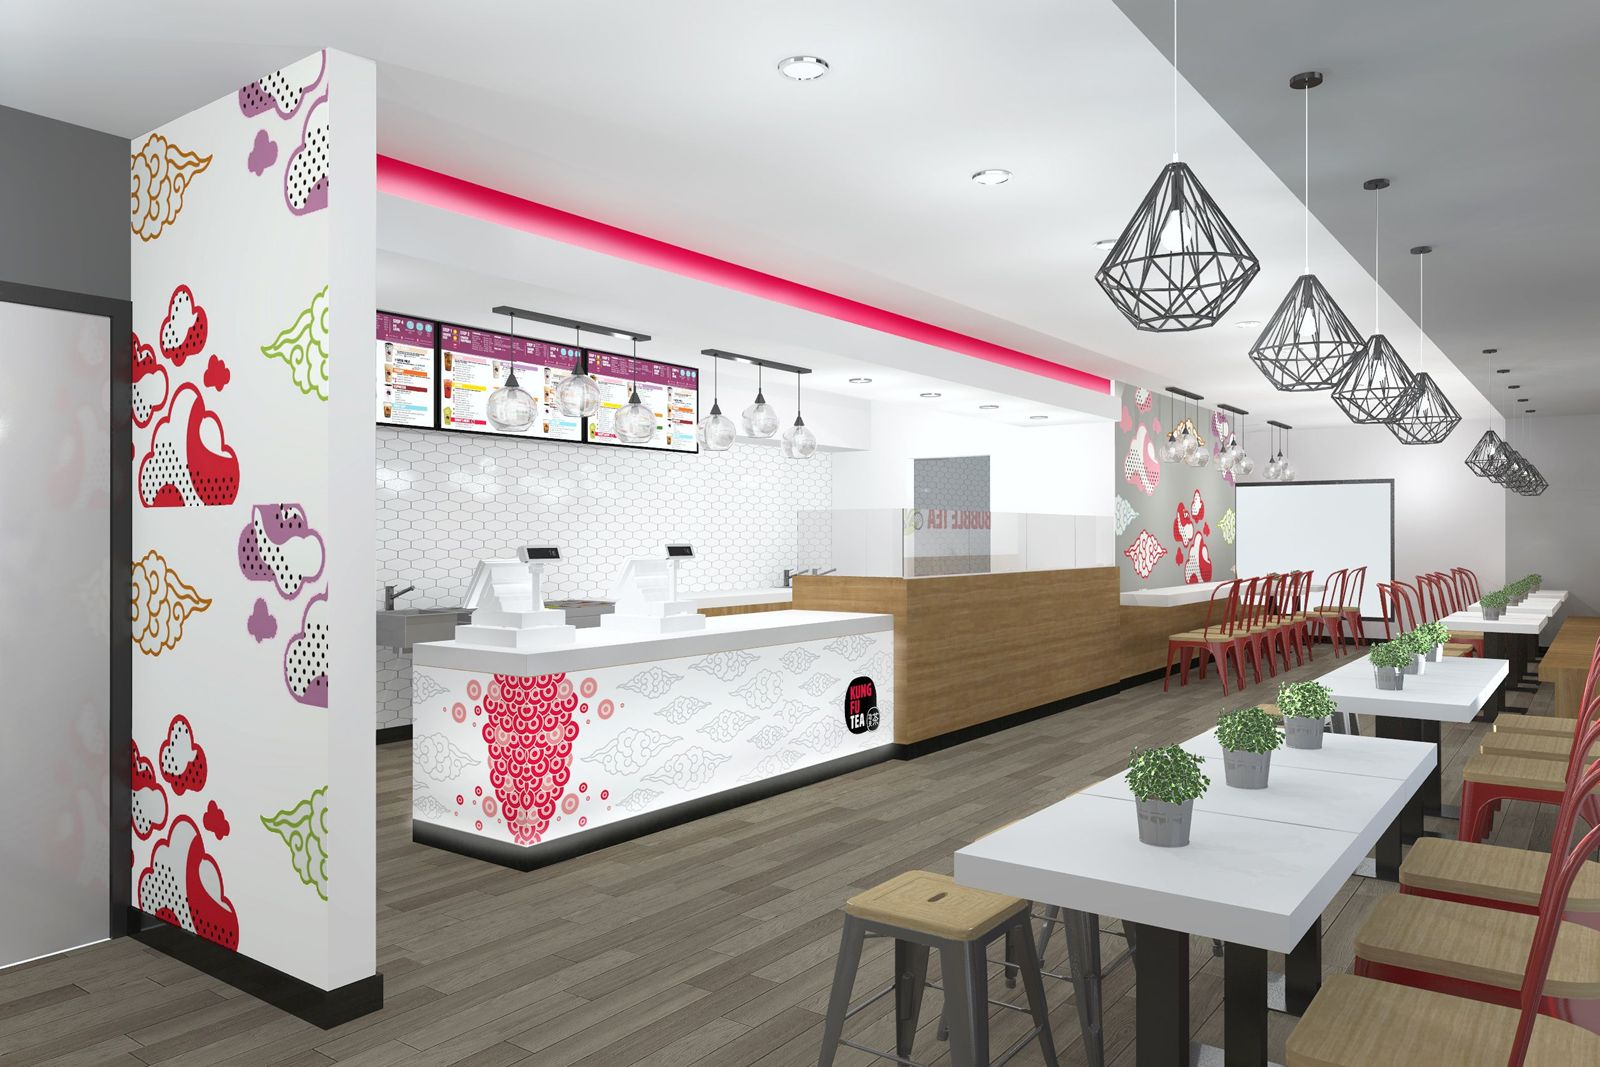 Kung Fu Tea Franchise Opens Up a New Location in National City with the Help of Mindful Design Consulting